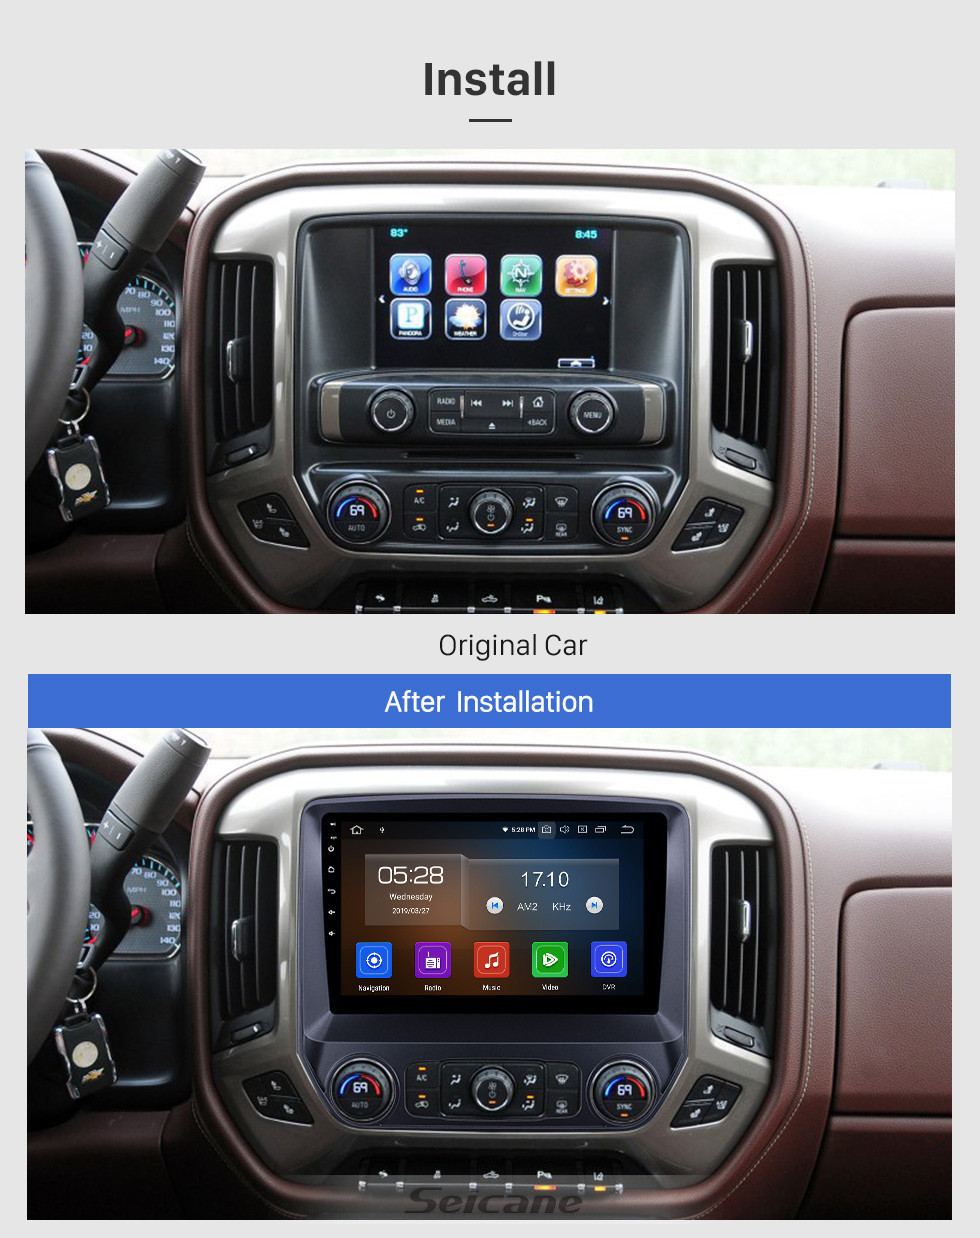 Seicane Android 10.0 10.1 inch 2014-2018 Chevy Chevrolet Silverado Car Radio with GPS Nav HD Touchscreen FM Audio Carplay Bluetooth WIFI support 4G SWC DVD